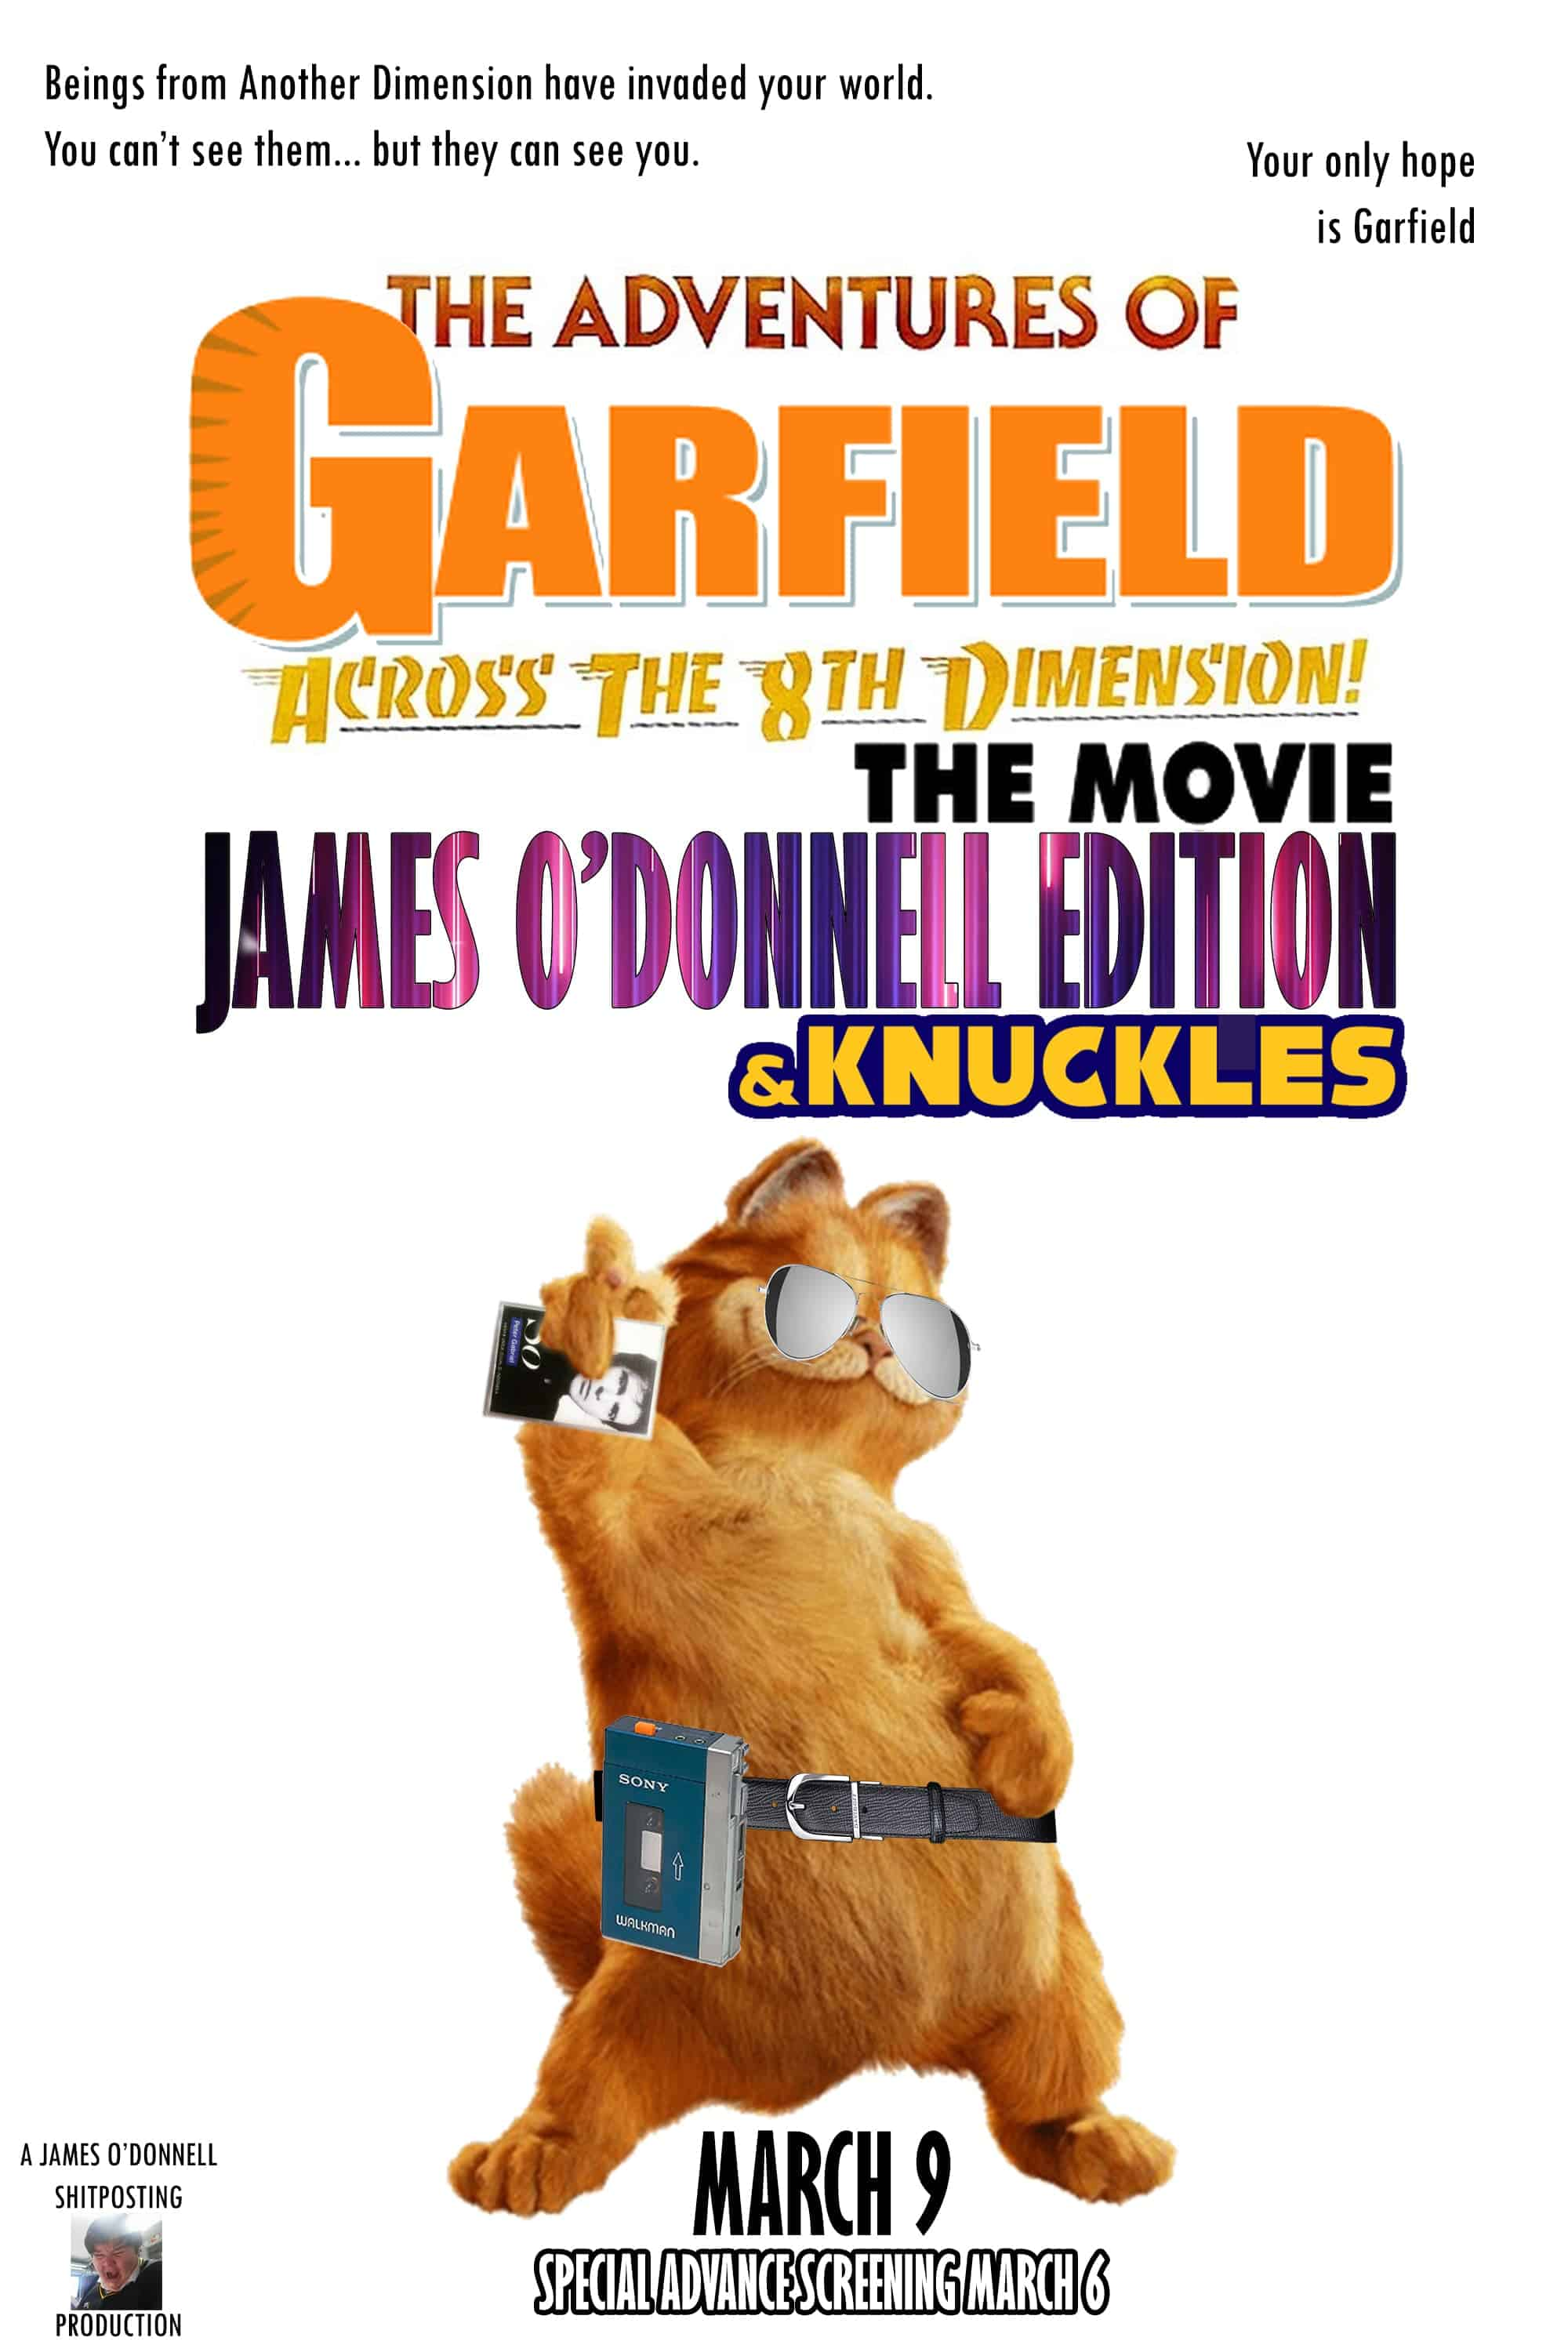 Garfield: The Movie, 2004